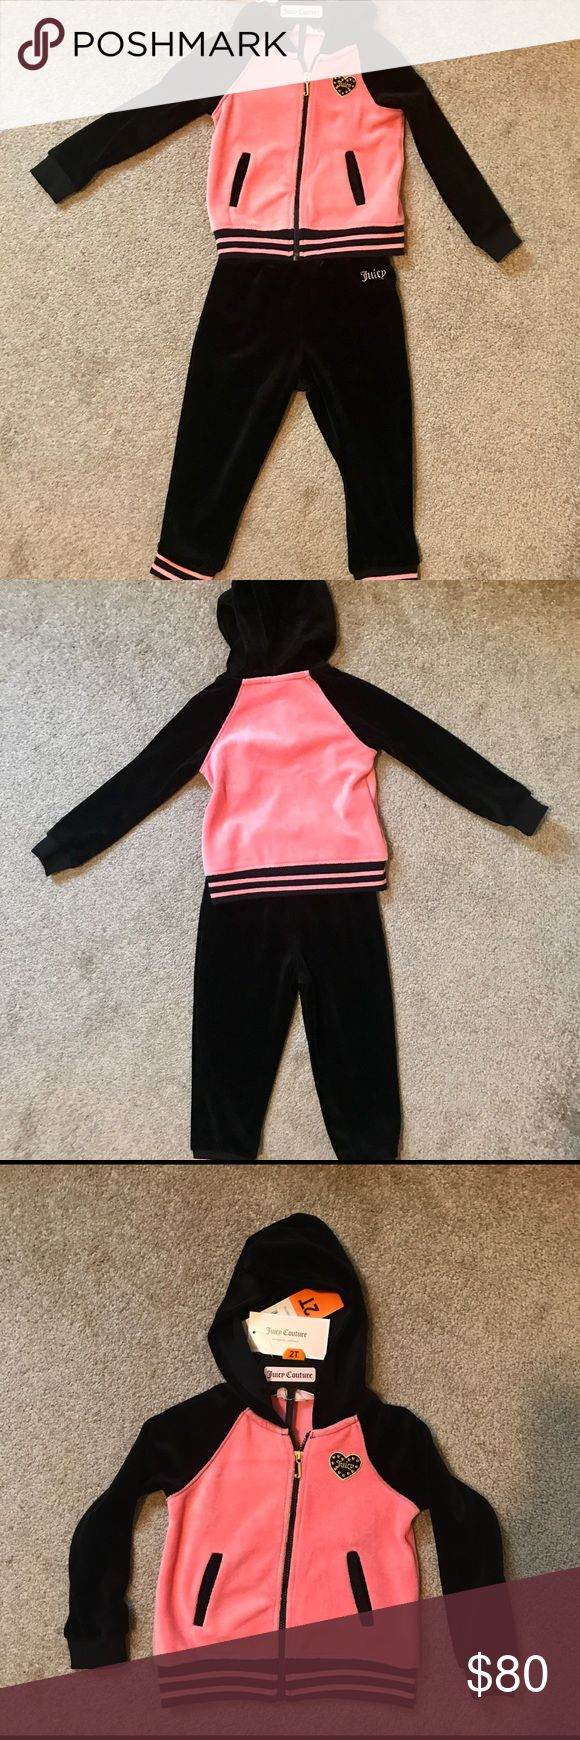 ♦️ 10% ⬇️ NEW Juicy Couture 2 Piece: Pink & Black NEW w/ TAGS: Signature Juicy Couture 2 piece set with hoodie and pants. Must have for JC collection! Soft velour, pink & black in color. Cozy yet chic look from head to toe! Juicy Couture logo on both jacket and pants. Jacket has dual front pockets, hemmed cuffs & stunning complimentary pink stripes. Pants have elastic waistband with soft & sturdy drawstring, hemmed cuffs & complimentary stripes.  May be able to get various toddler sizes…